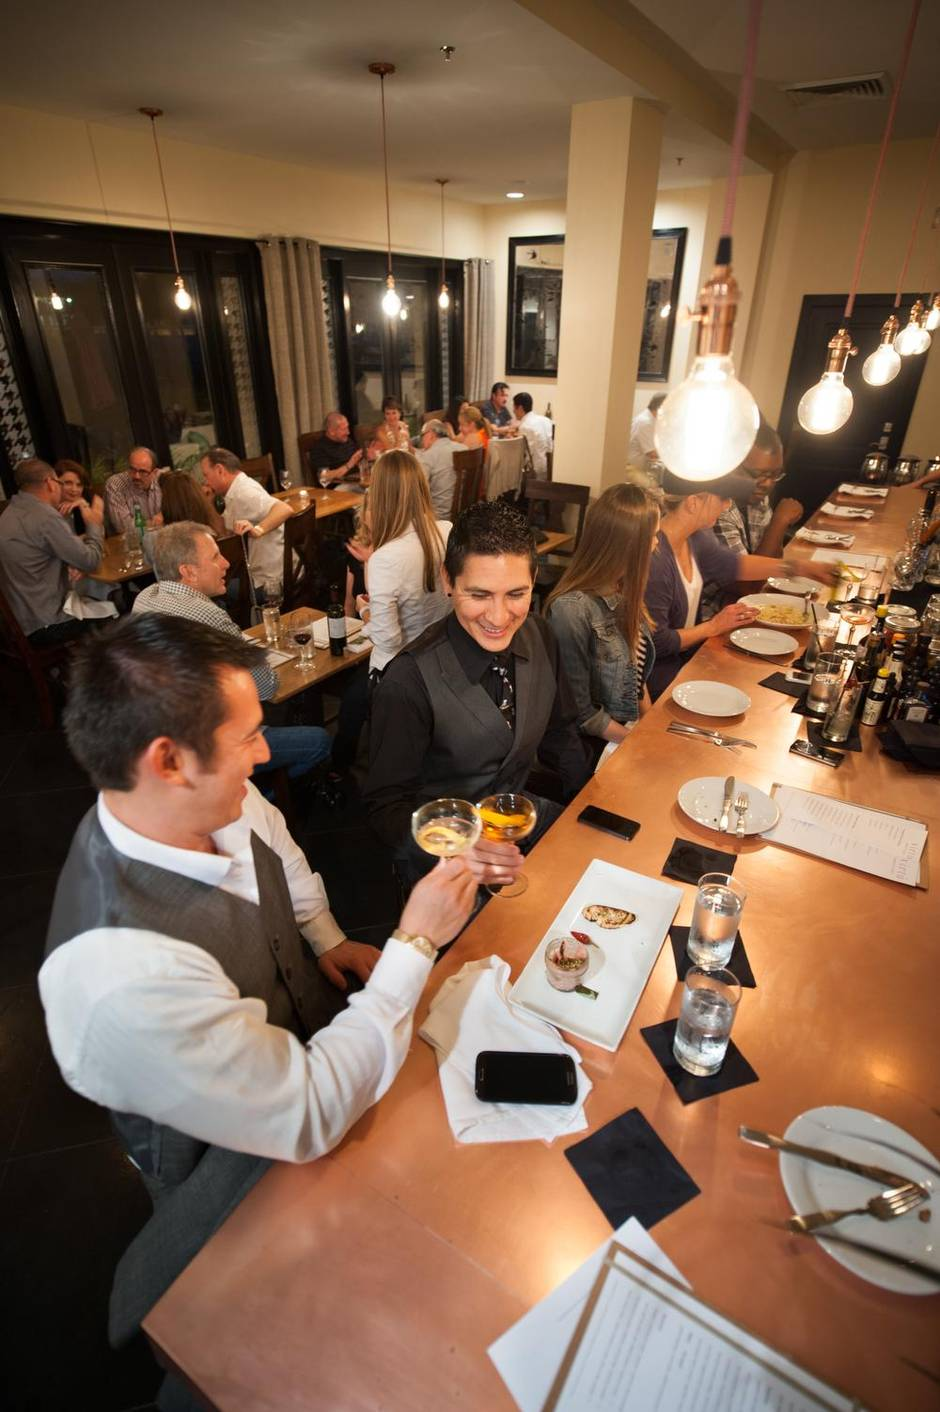 The Best Places To Eat In Scottsdale Trust Us We Heard